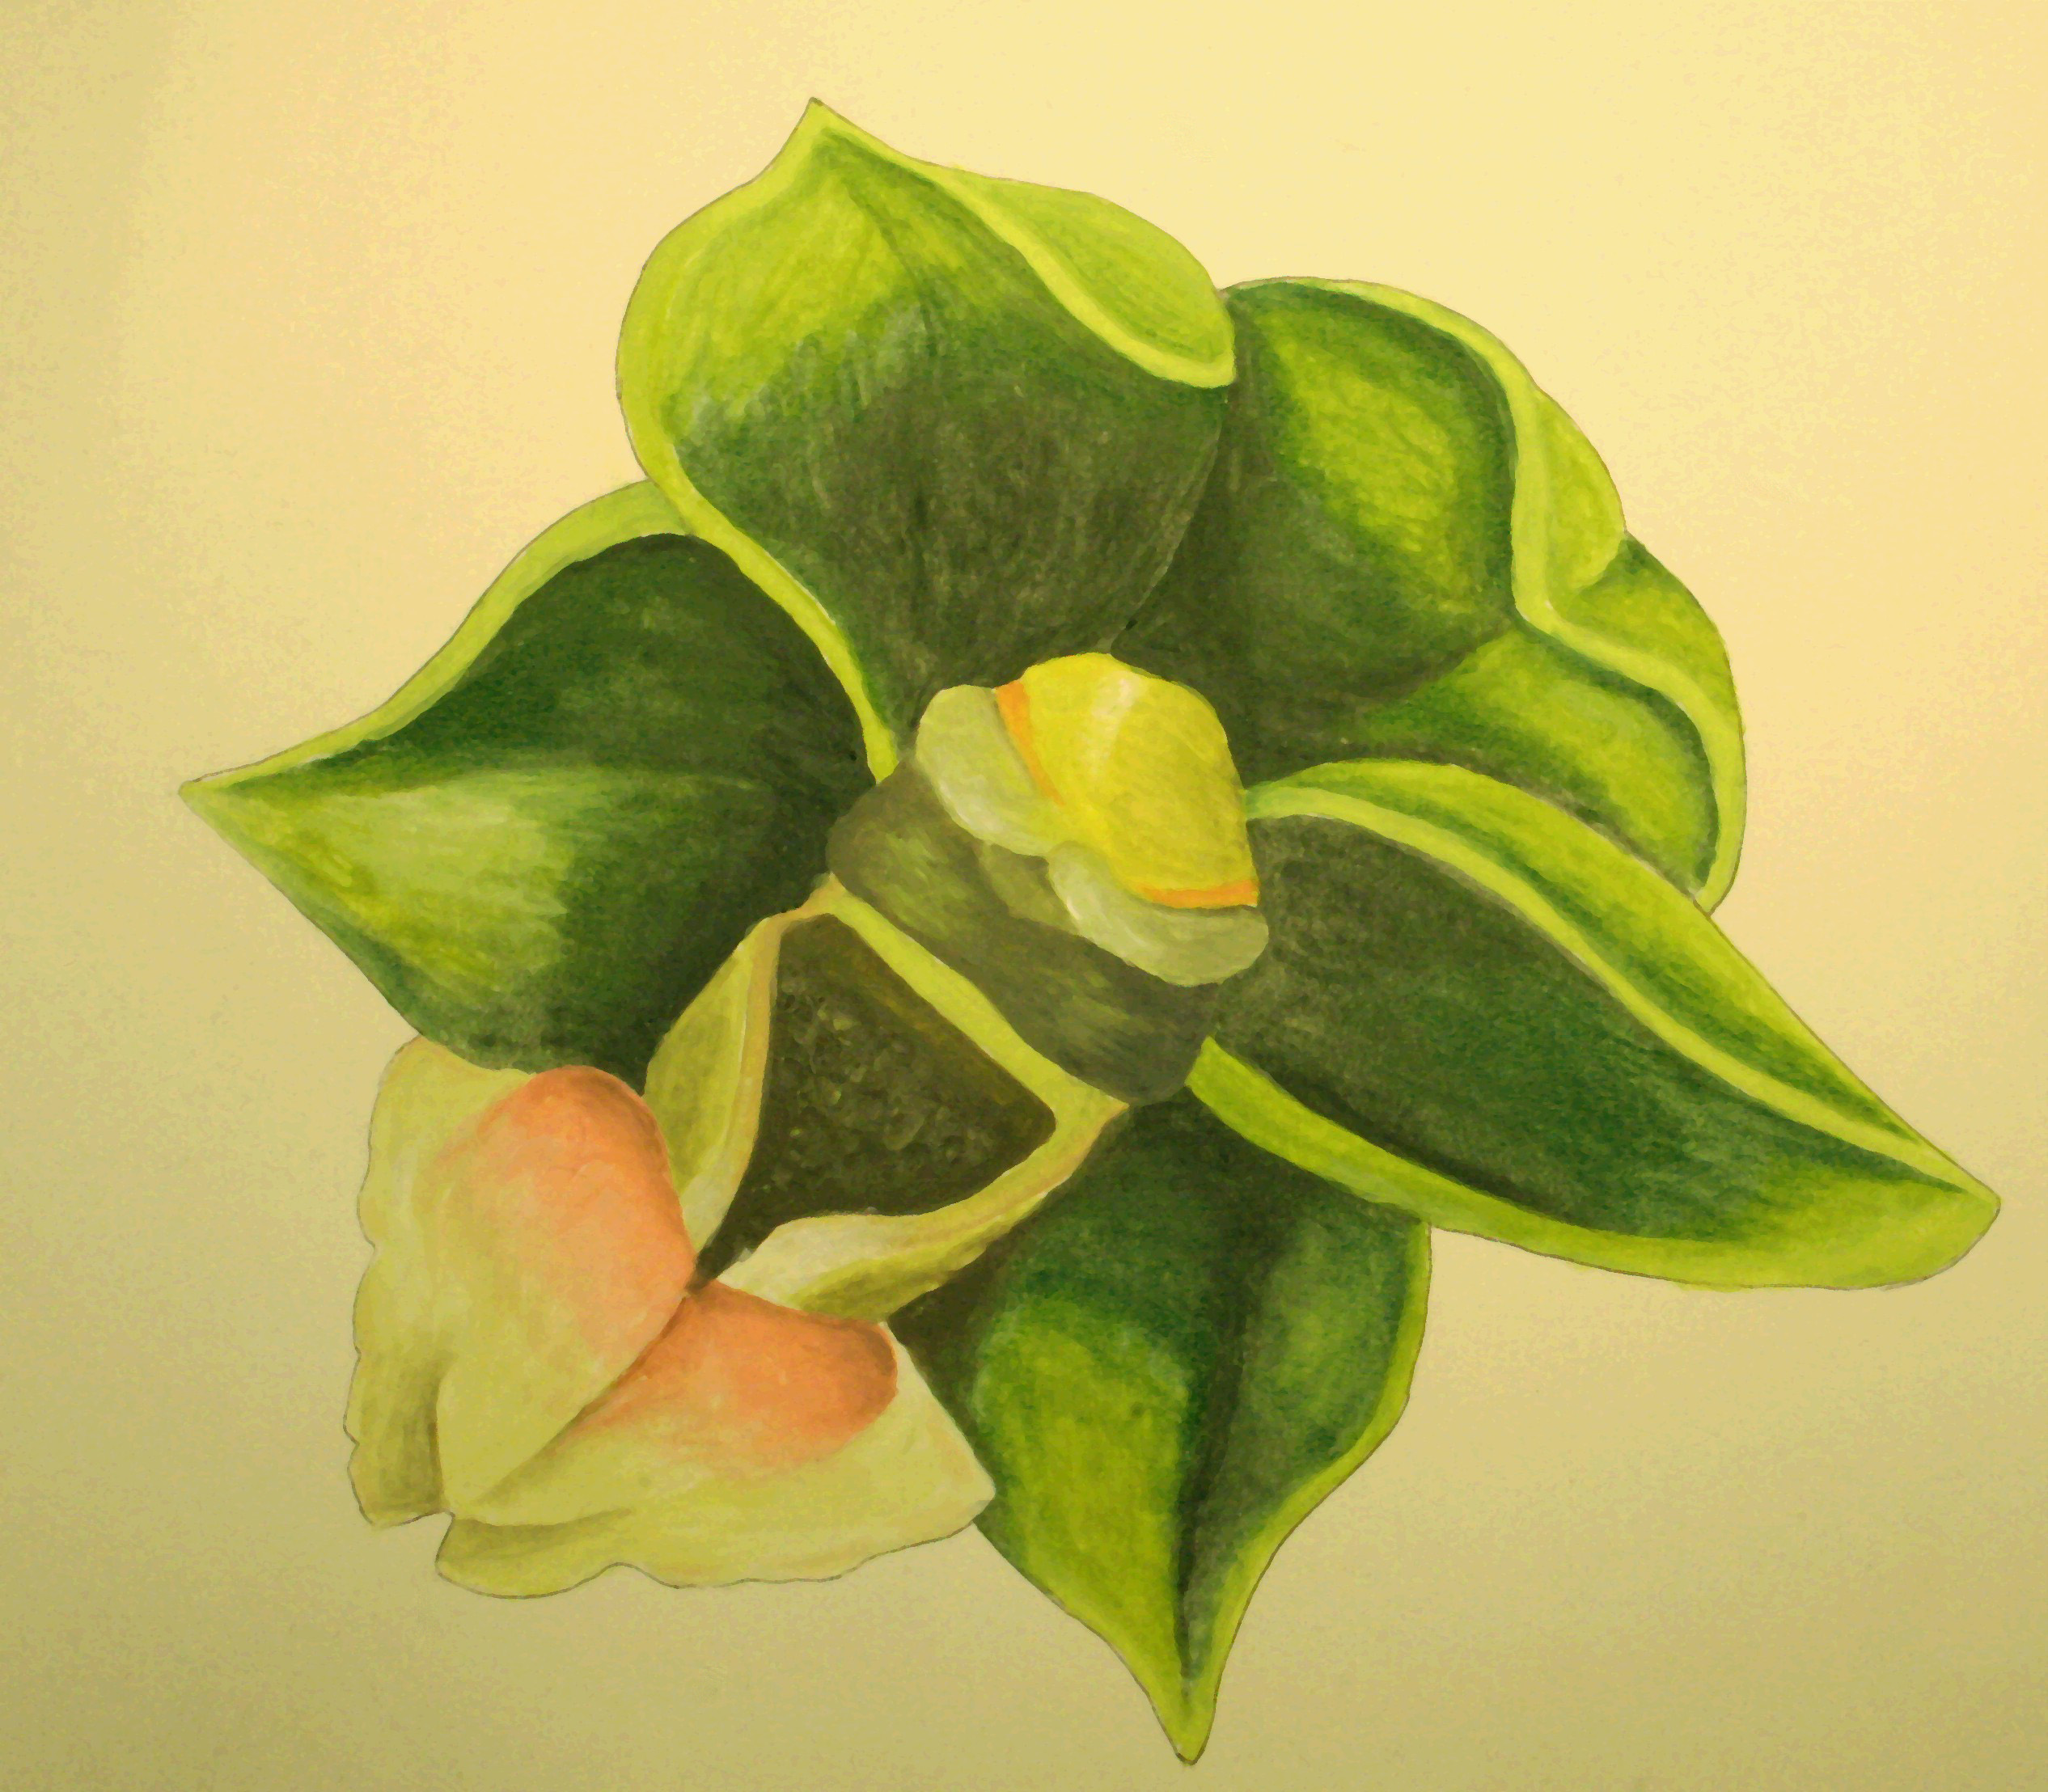 Depiction of Epipactis persica